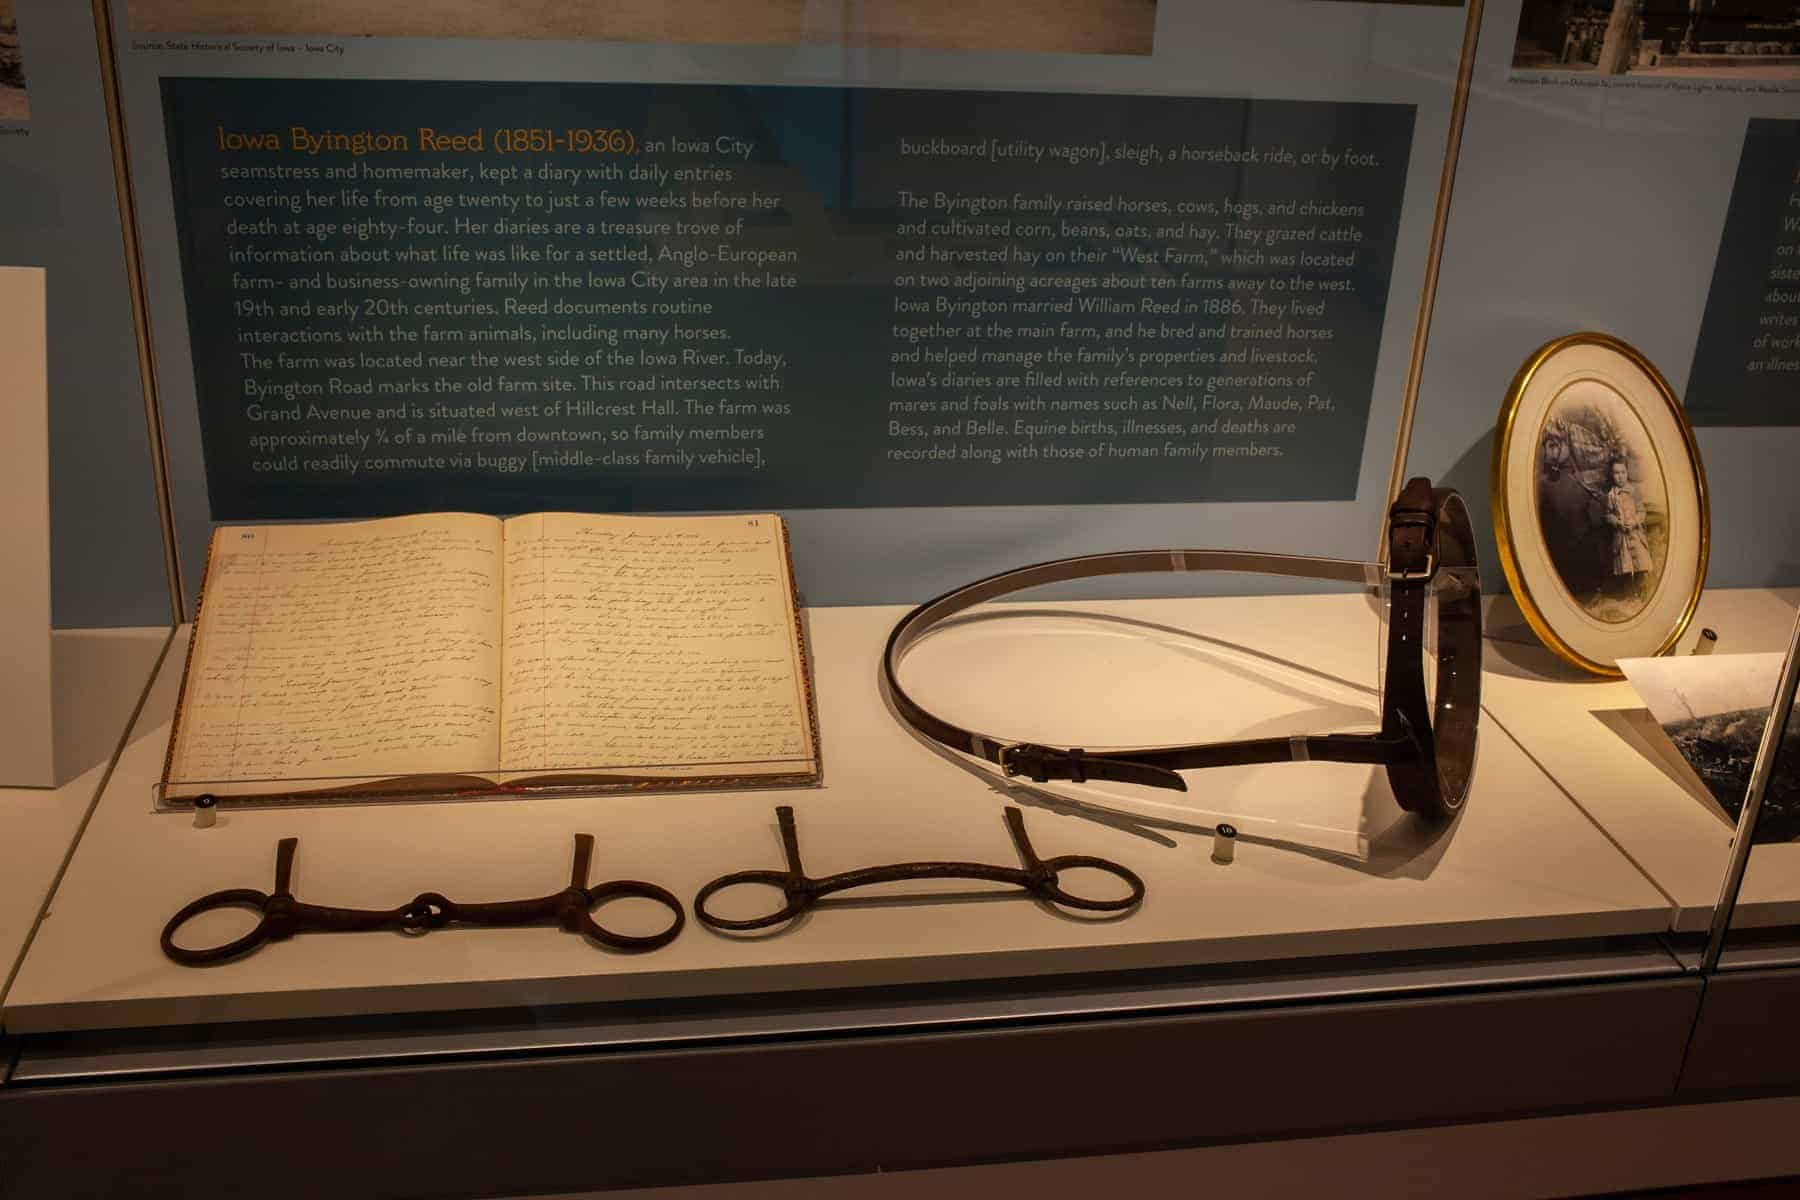 A 19th century diary with beautiful handwritten script is open at the bottom of the display case. Two antique horse mouth bits lie in front of the diary, and to the right is an antique leather horse noseband.